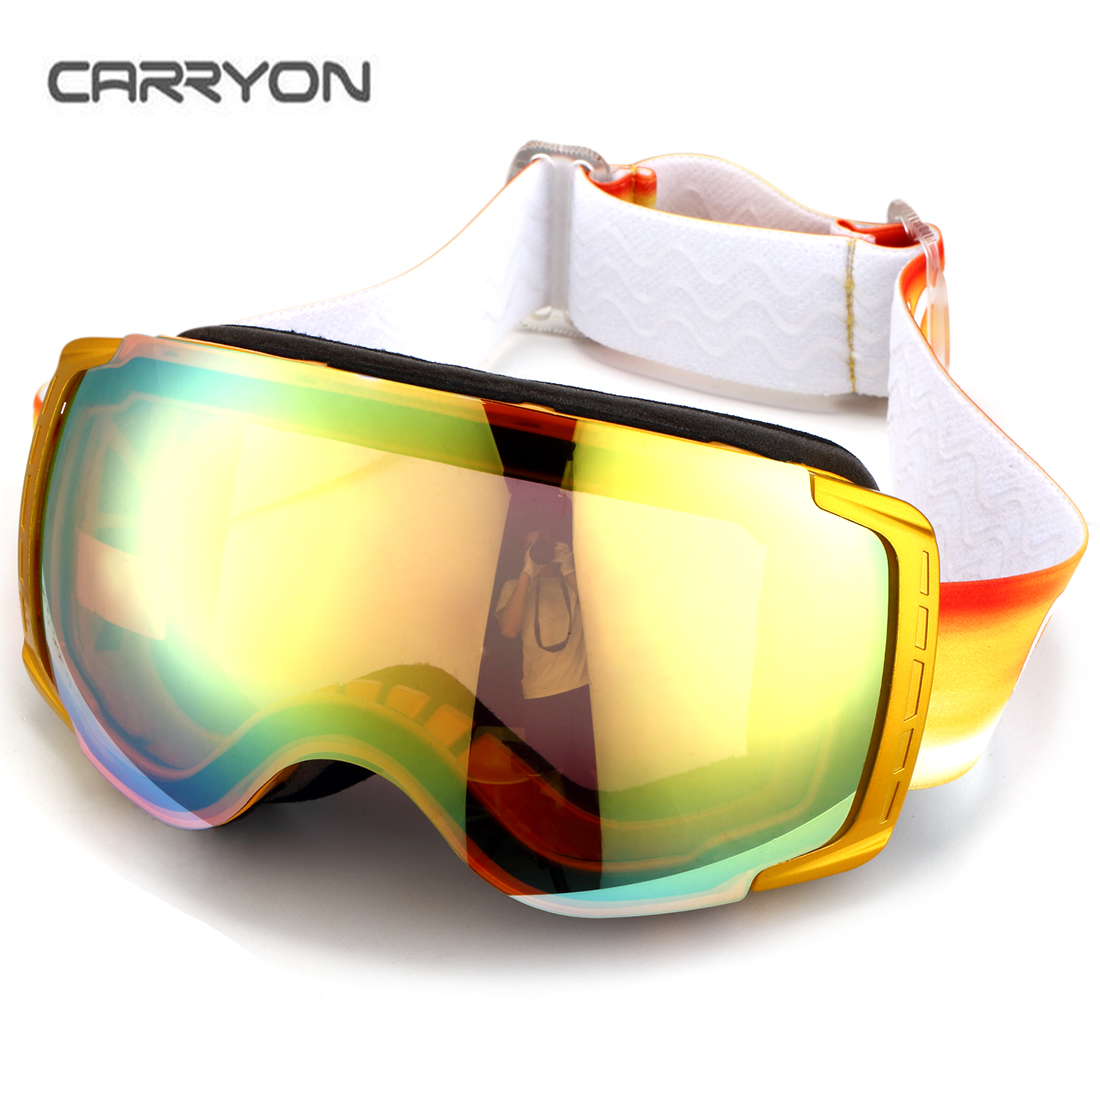 Carryon Snowboard Ski Goggles Anti-fog UV Mirror Lens OTG Over Glasses Womens Mens by Unique-Bargains